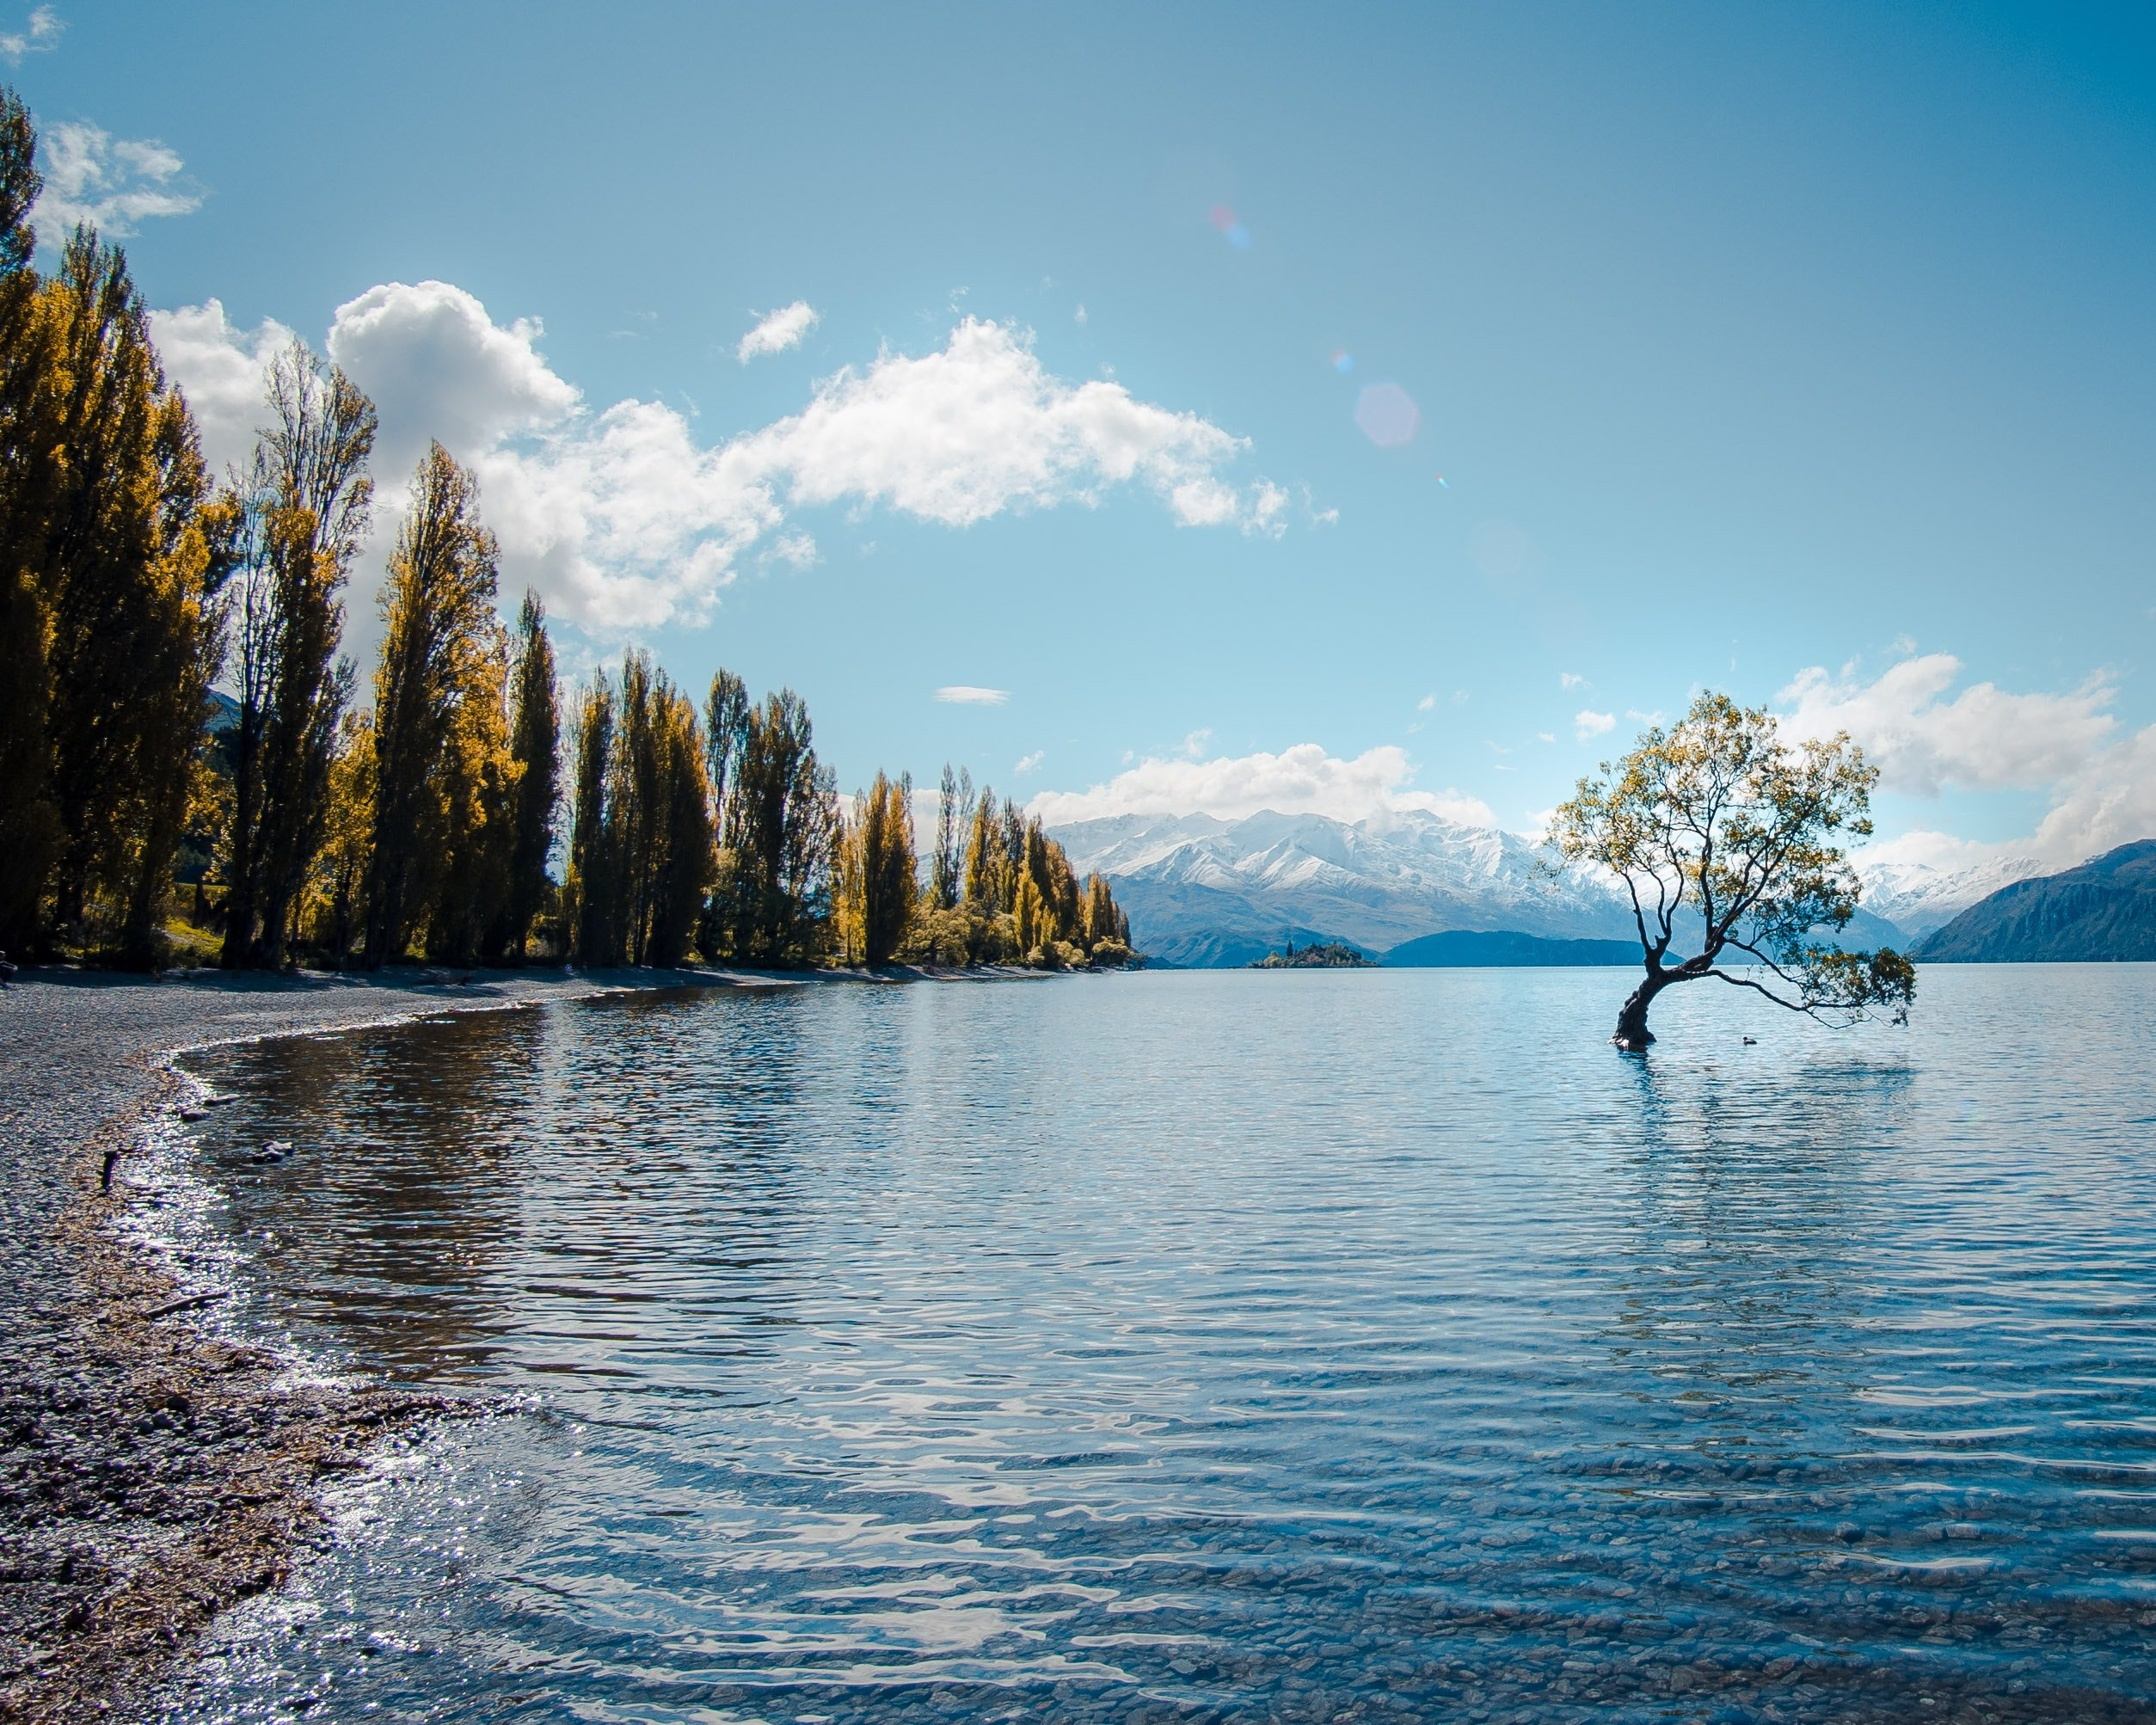 3-Day Lake Wanaka Wellness from Queenstown - New Zealand Itinerary